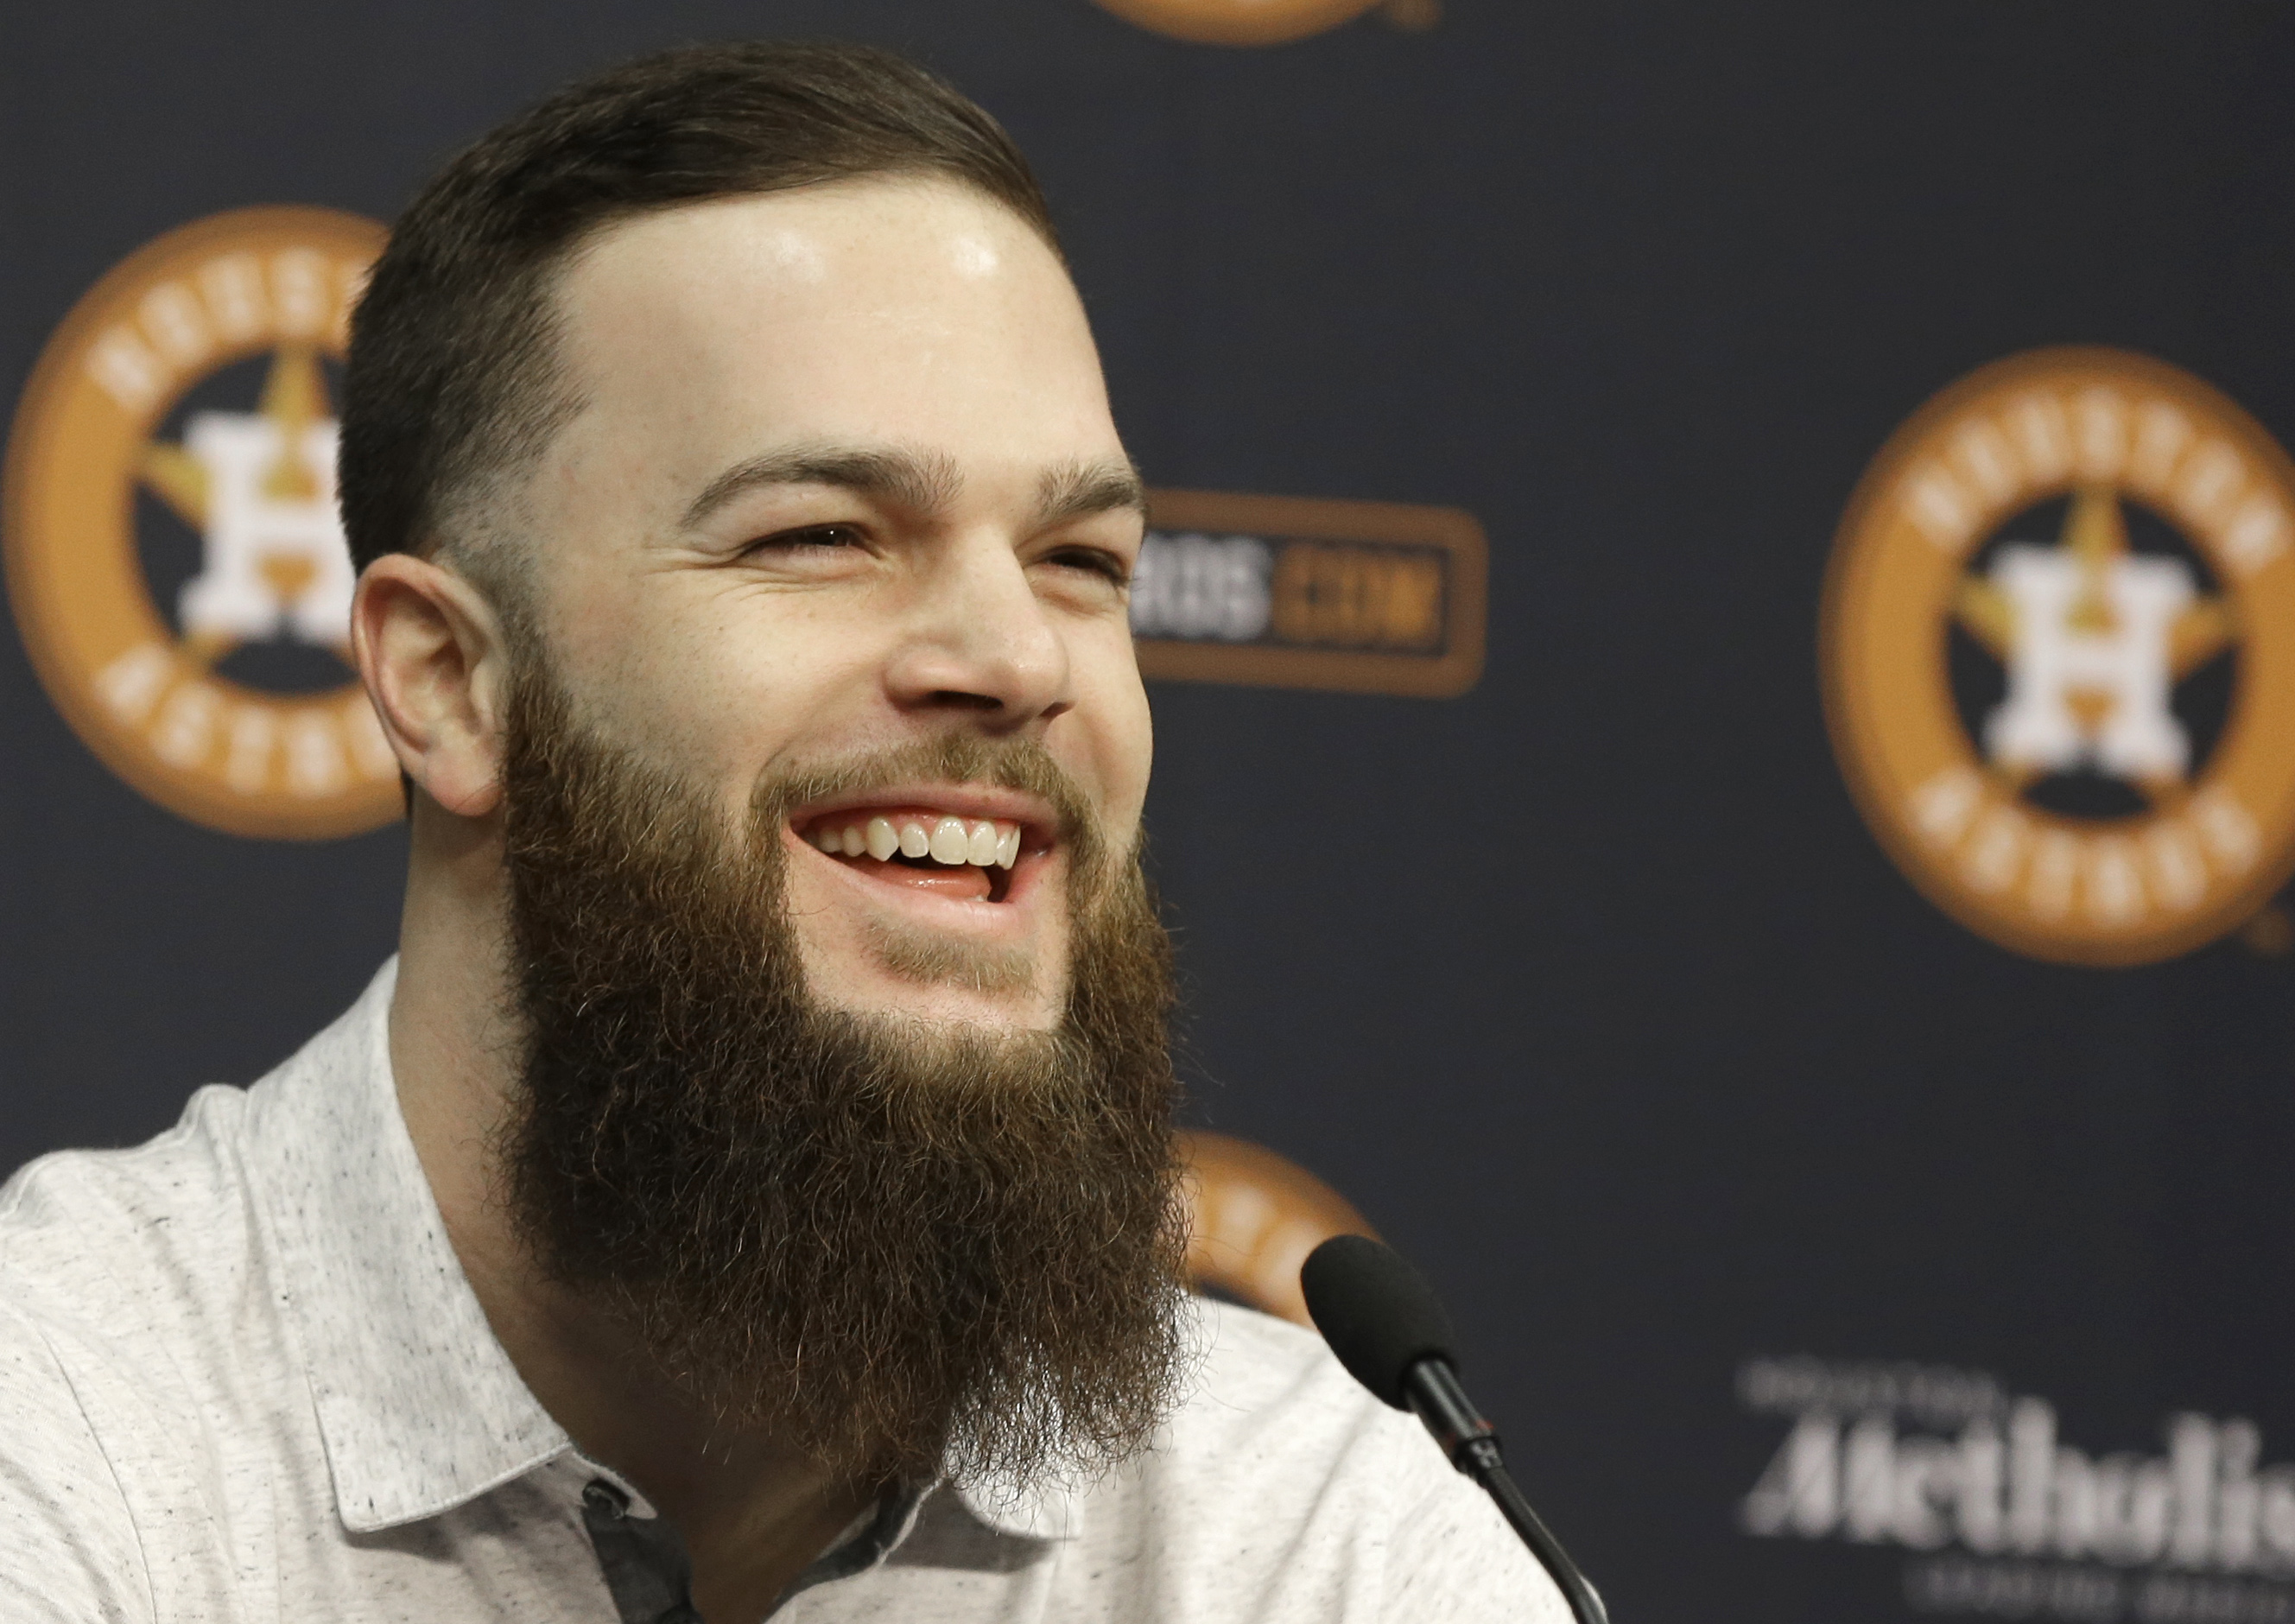 FILE- In this Nov. 19, 2015, file photo, Houston Astros pitcher Dallas Keuchel speaks at a press conference in Houston. Cy Young Award winners Jake Arrieta of the Chicago Cubs and Keuchel were among 156 players who filed for salary arbitration Tuesday, Ja